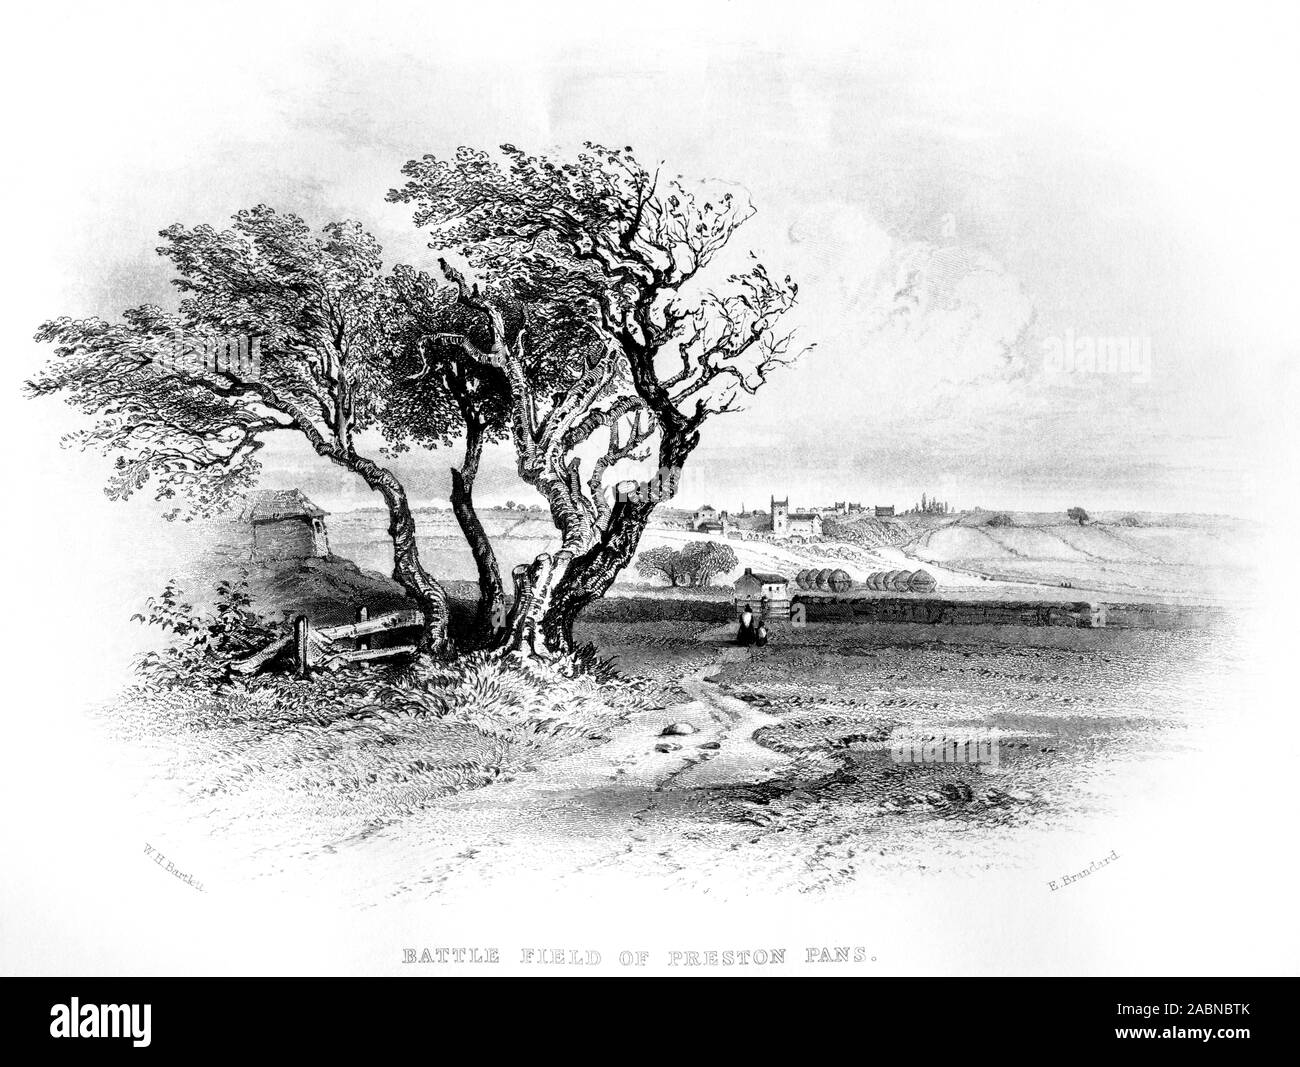 An engraving of the Battle Field of Preston Pans (Prestonpans) looking towards Tranent scanned at high resolution from a book printed in 1859. Stock Photo